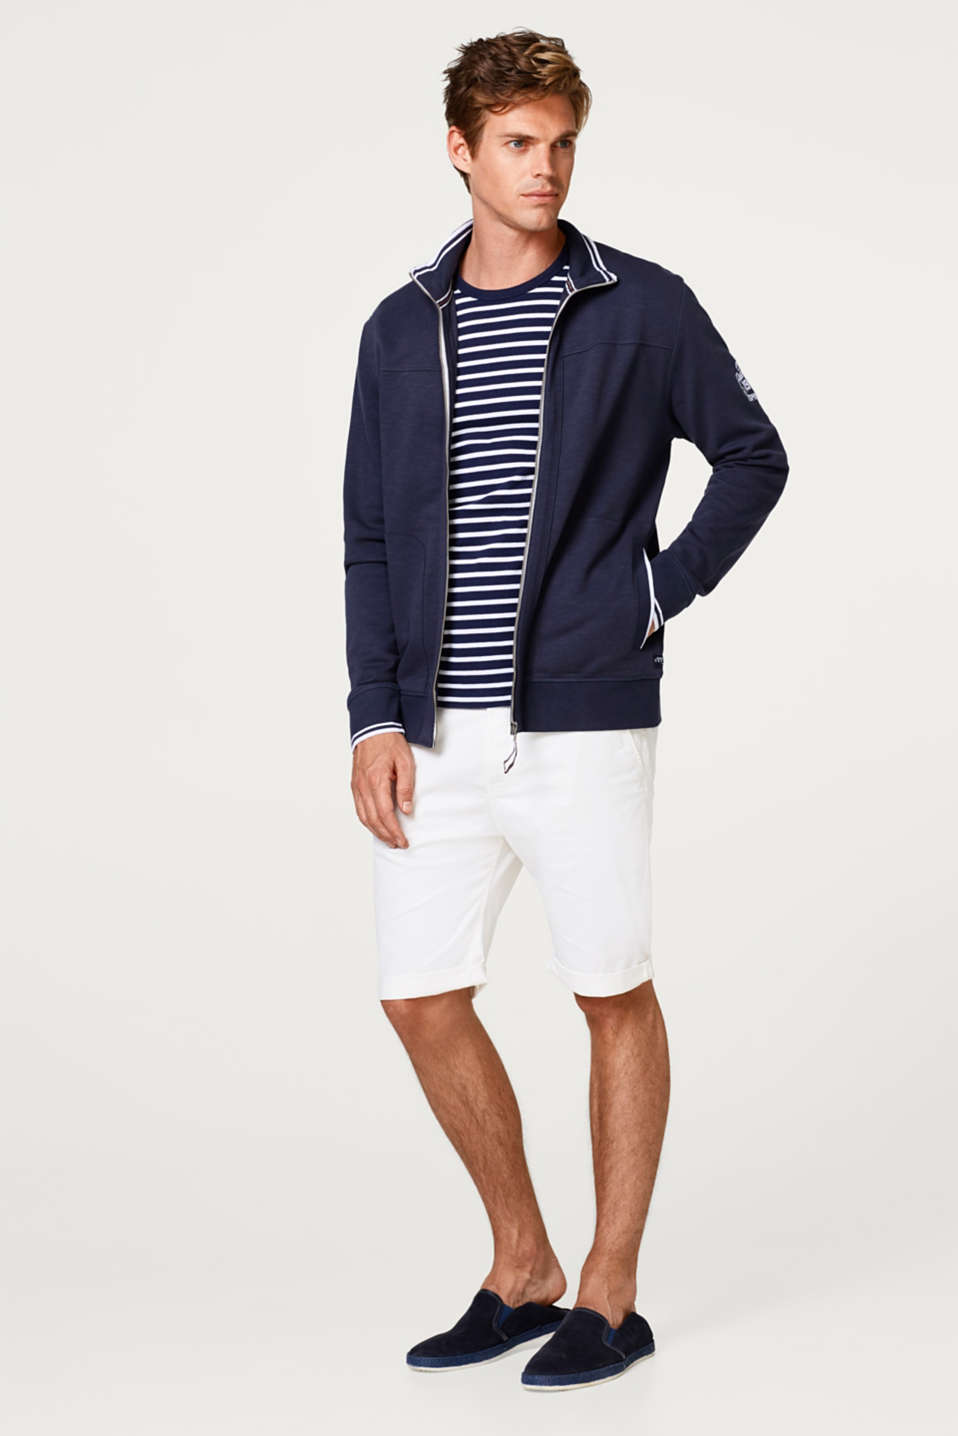 Zip-up cardigan made of 100% cotton